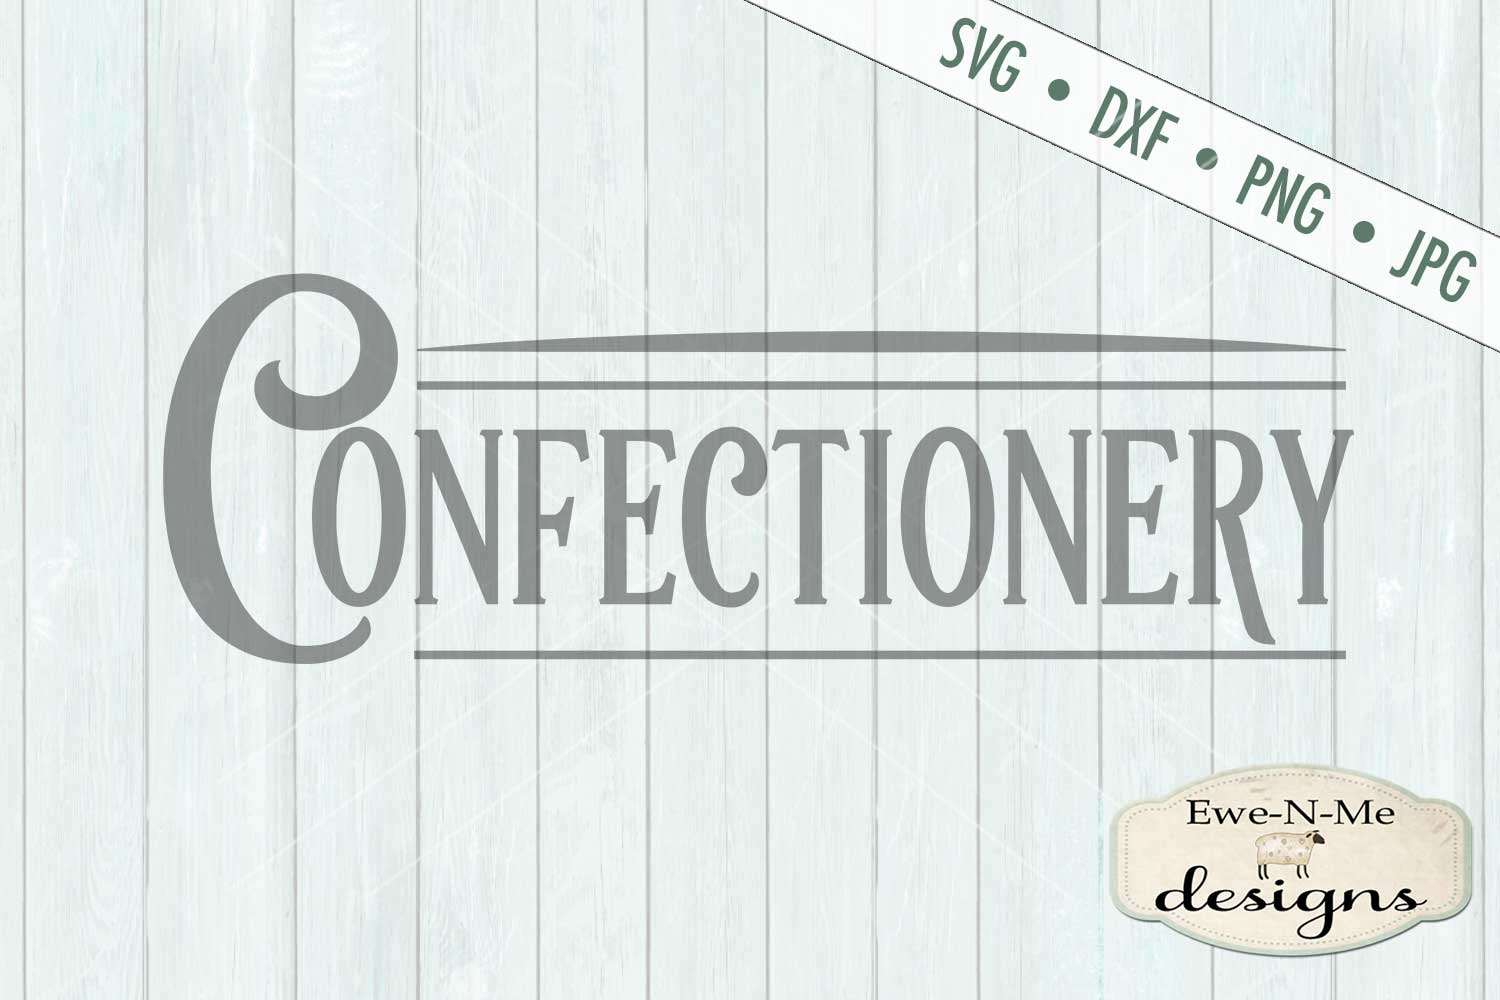 Confectionery - Bakery Kitchen - SVG DXF File example image 2